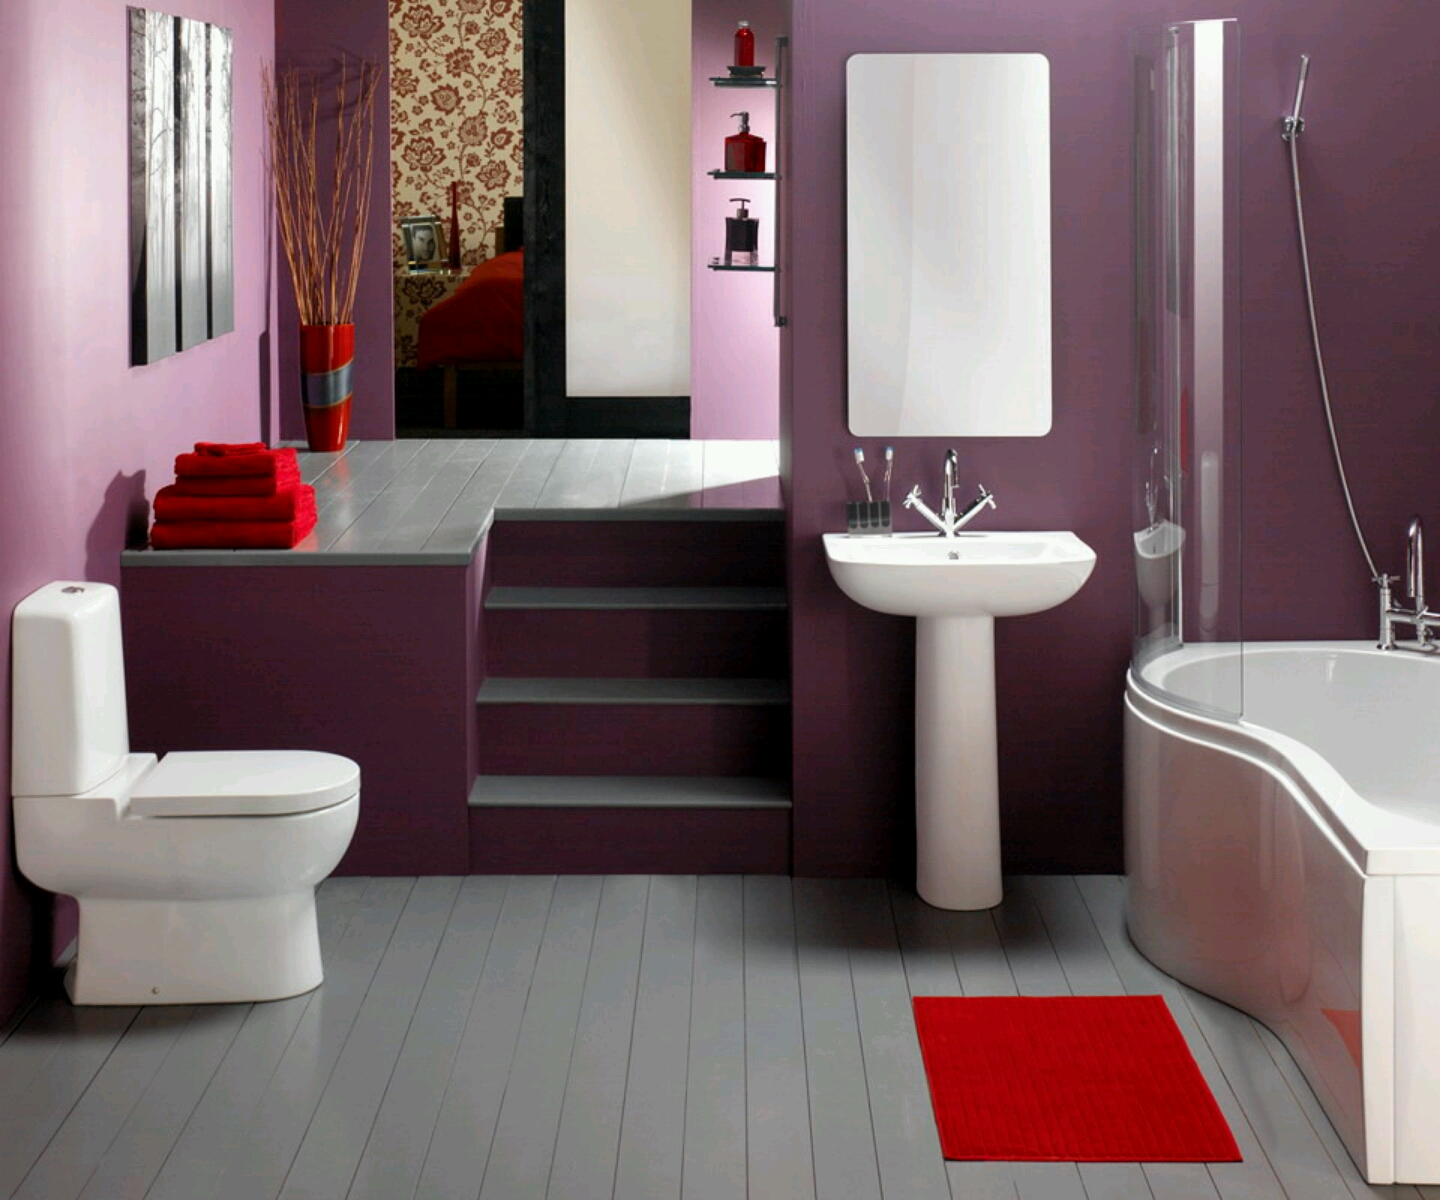 New home designs latest luxury modern bathrooms designs for Bathroom design and decor